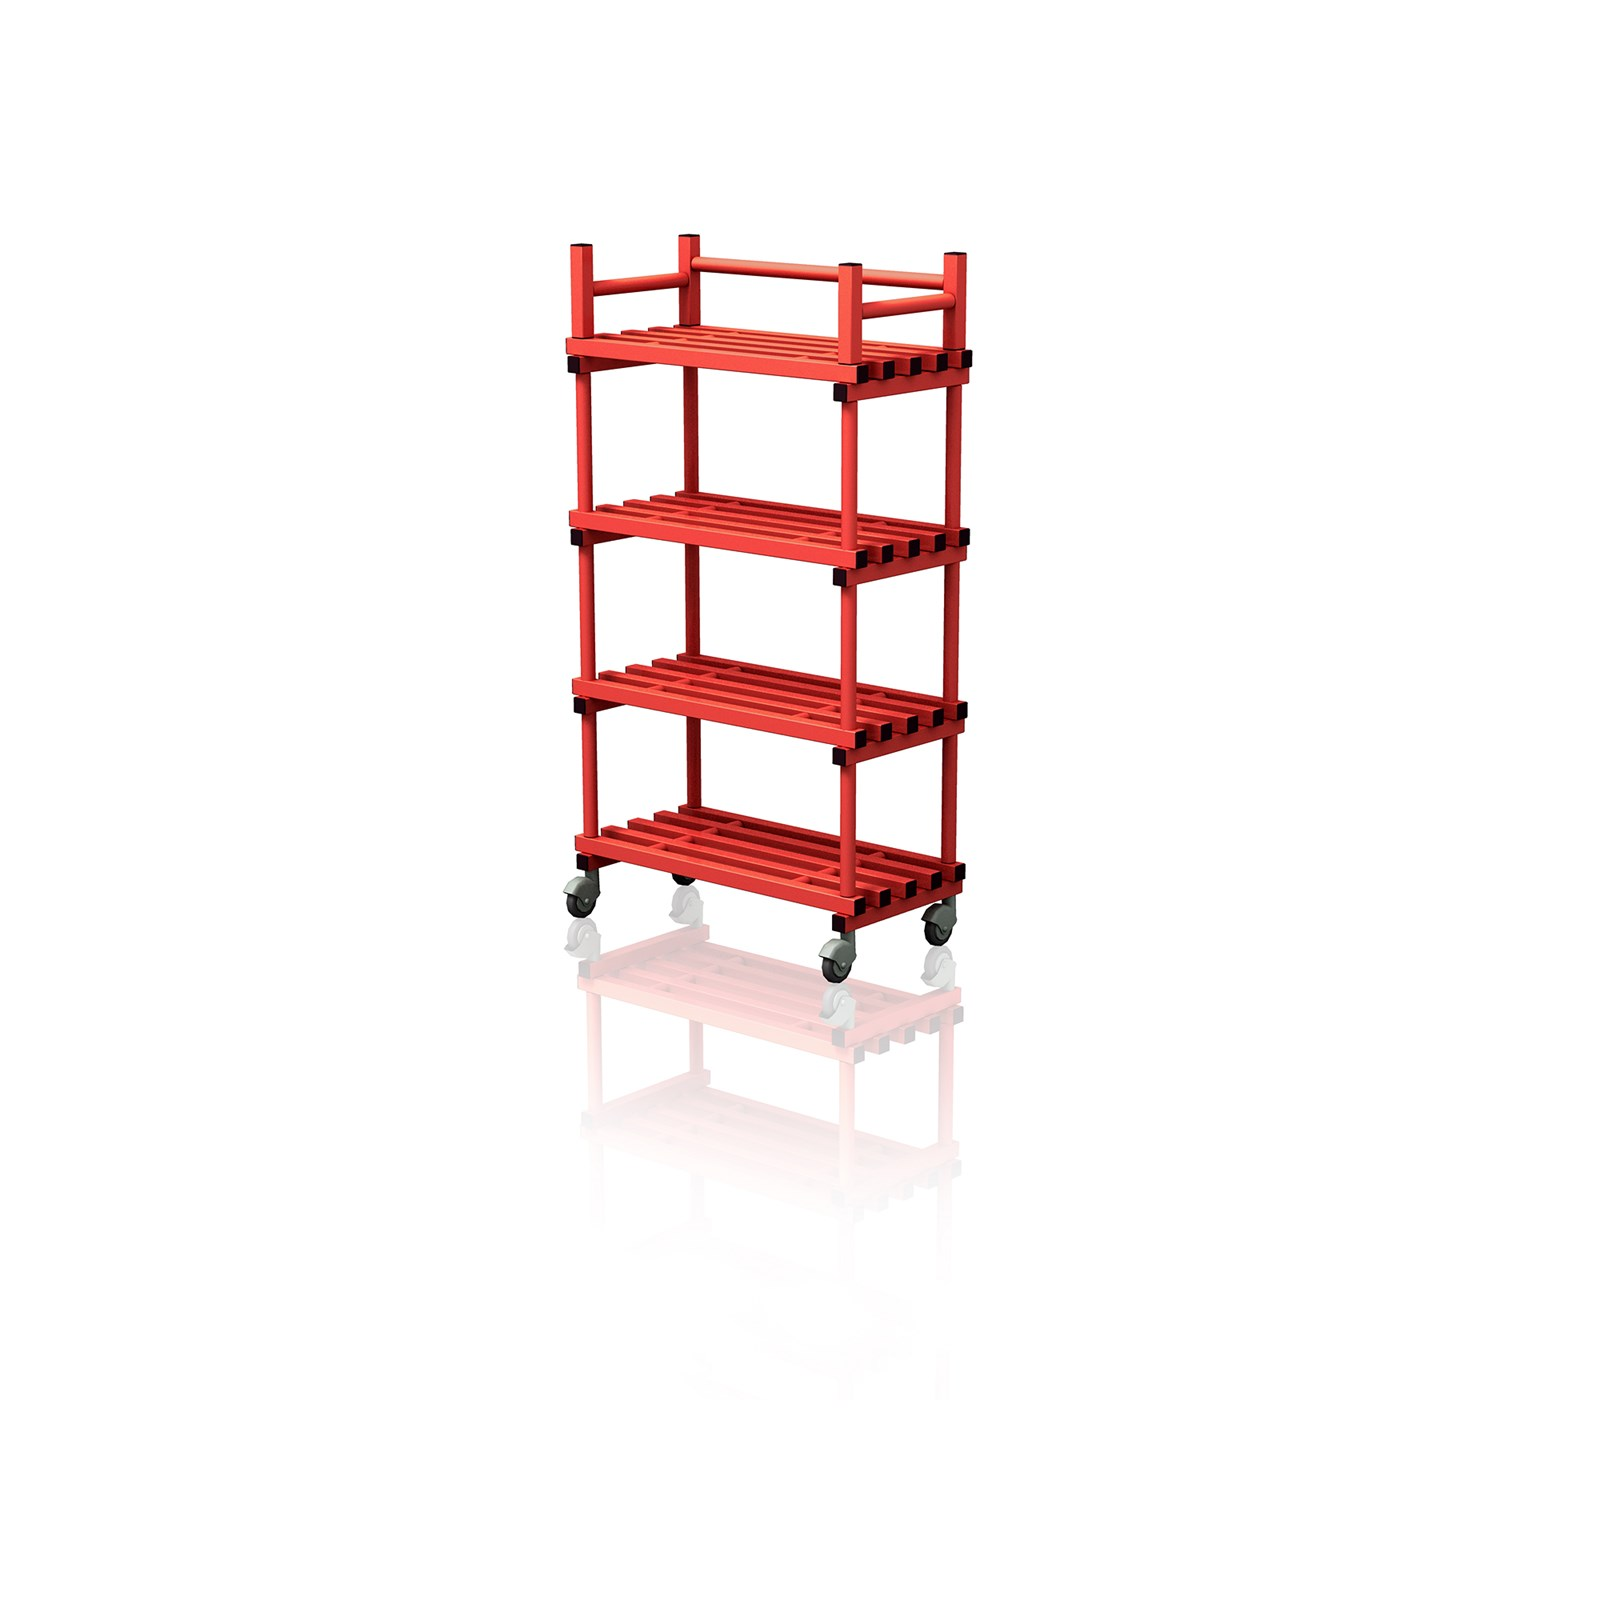 Mobile Shelving Unit Red